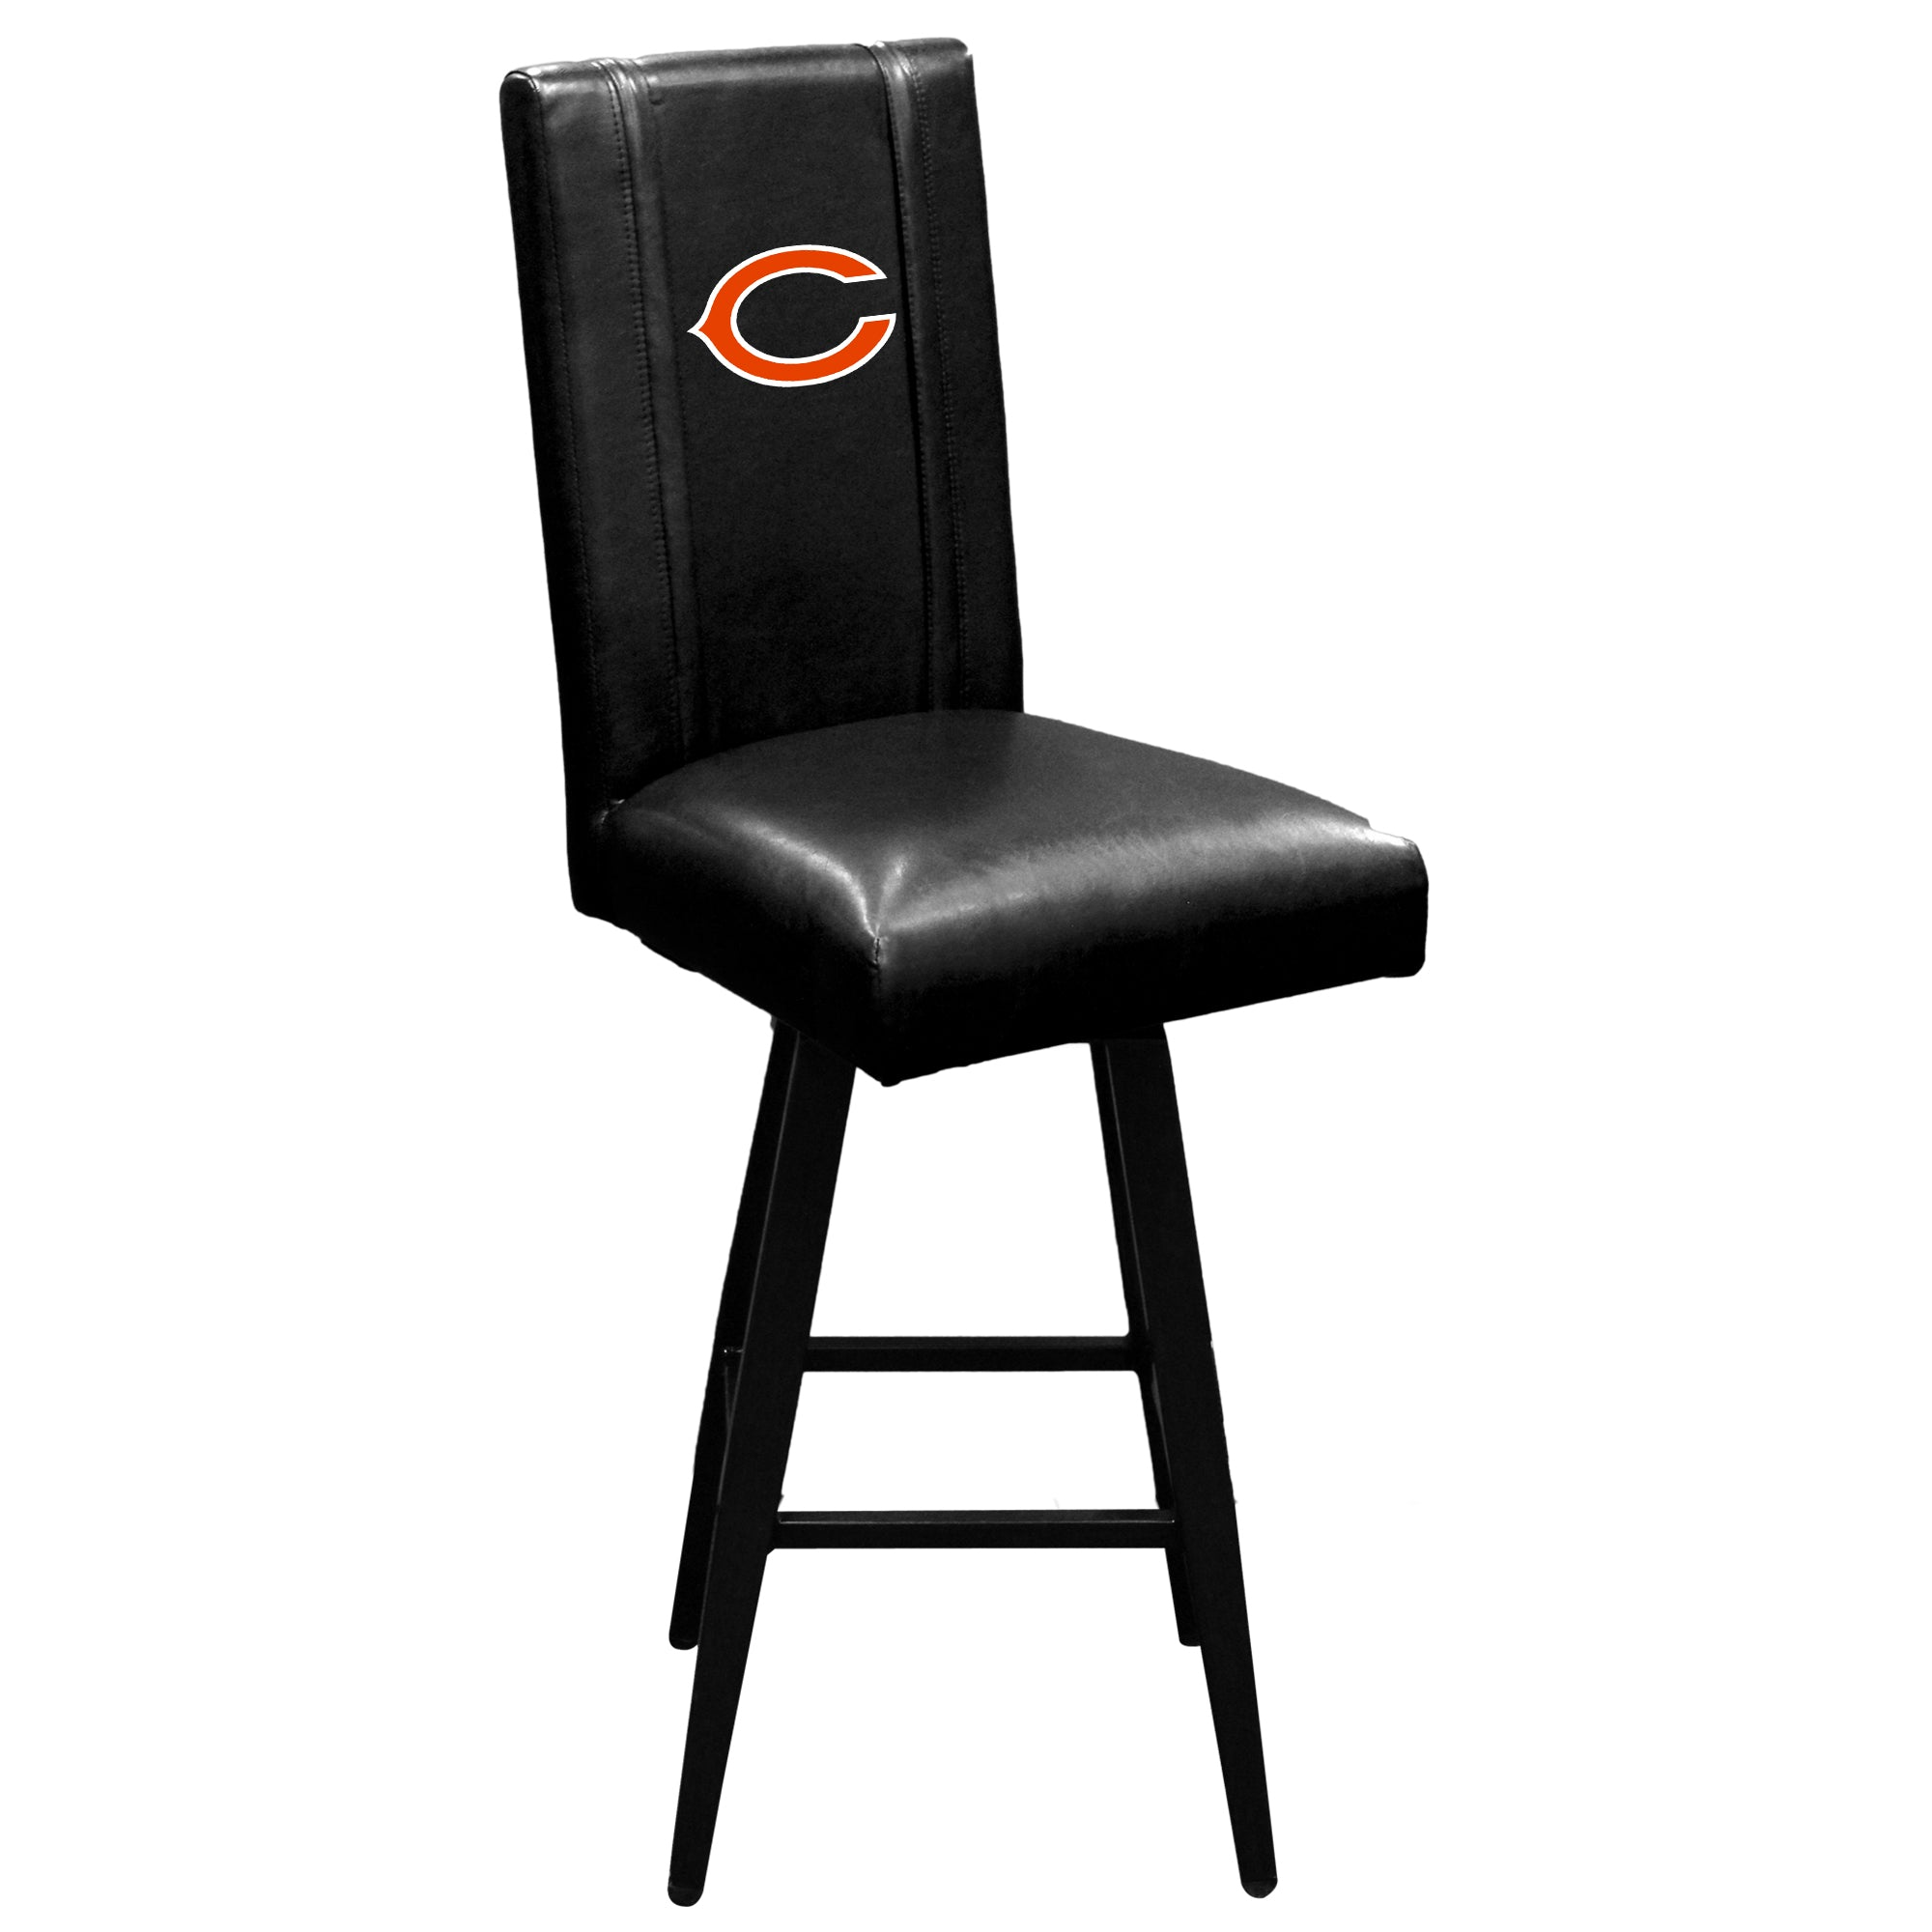 Swivel Bar Stool 2000 with  Chicago Bears Primary Logo